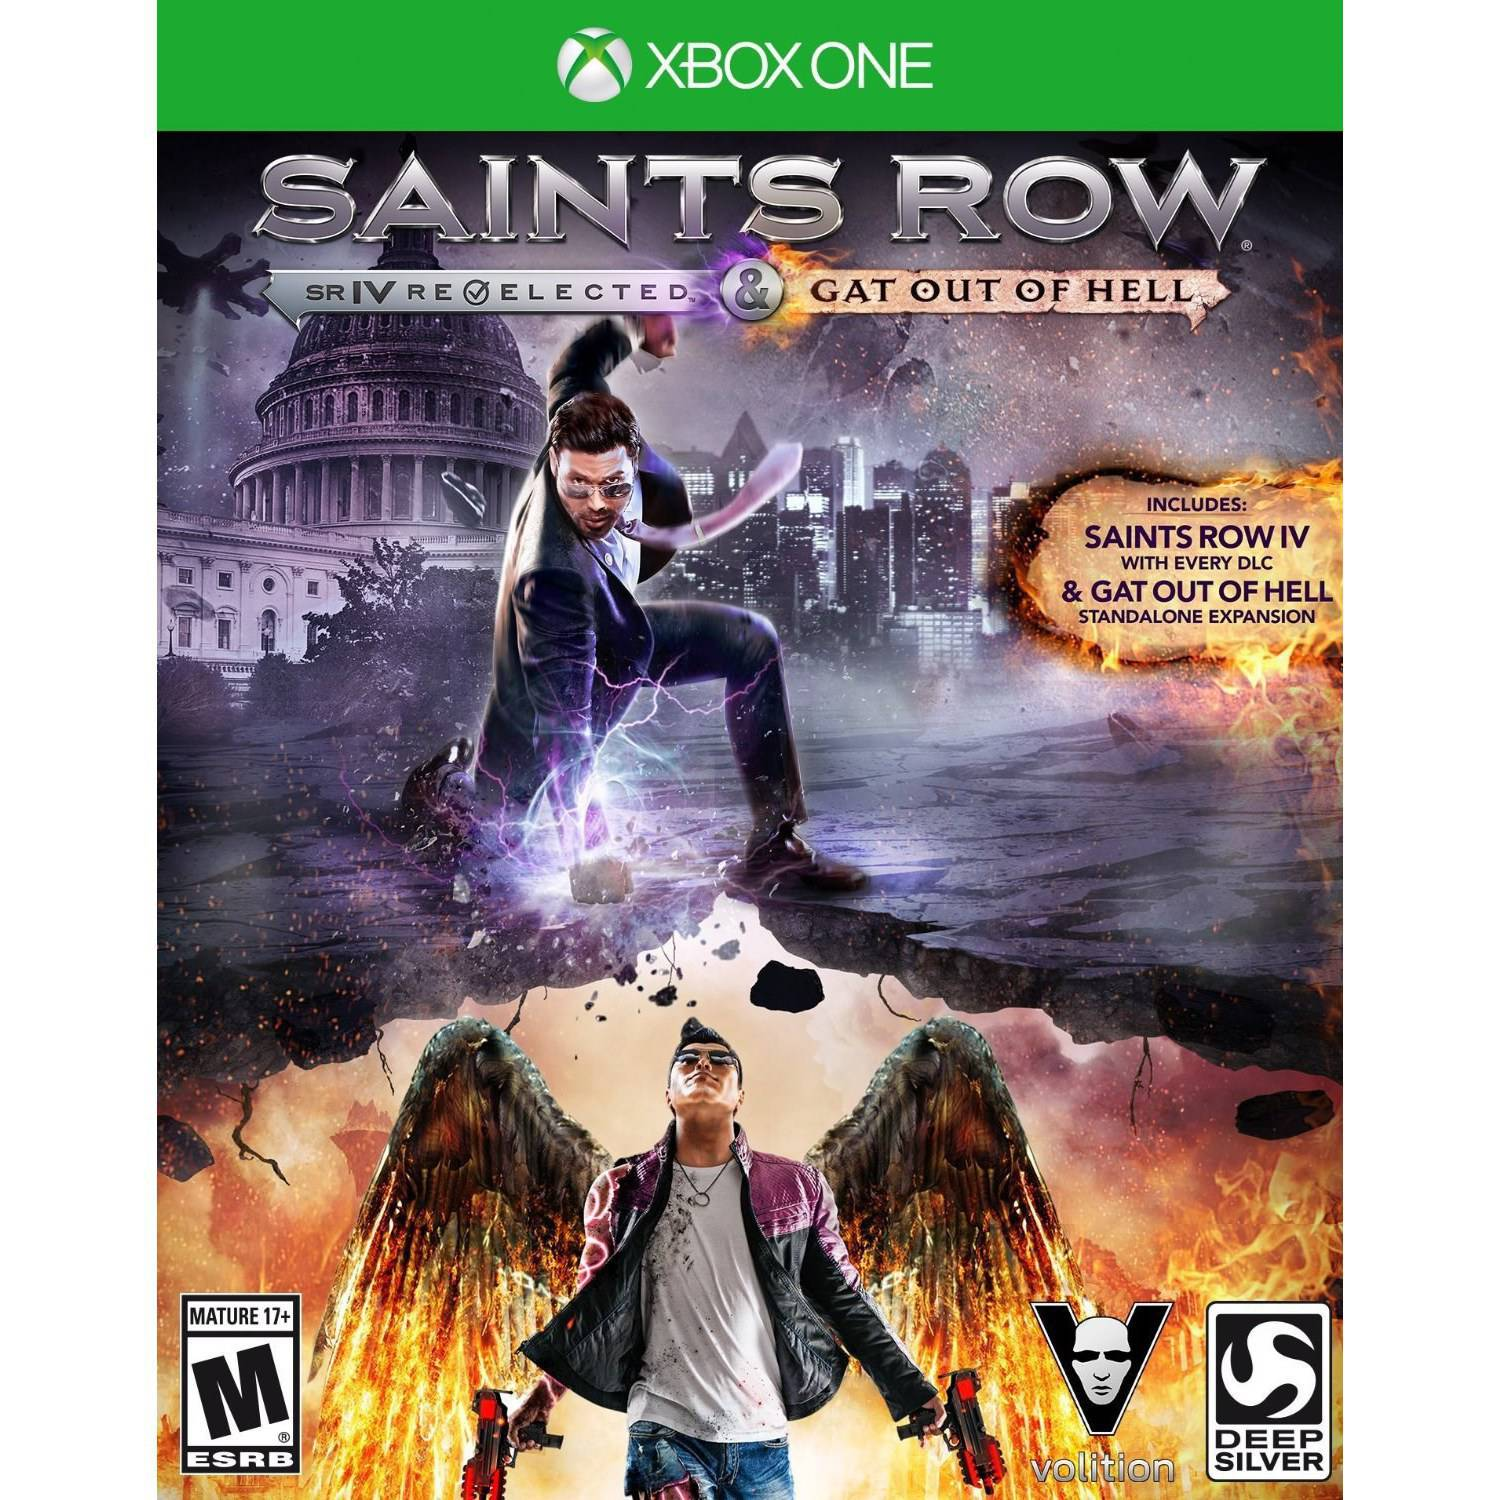 Saints Row IV: Re-Elected + Gat Out of Hell Launch Edition (Xbox One)